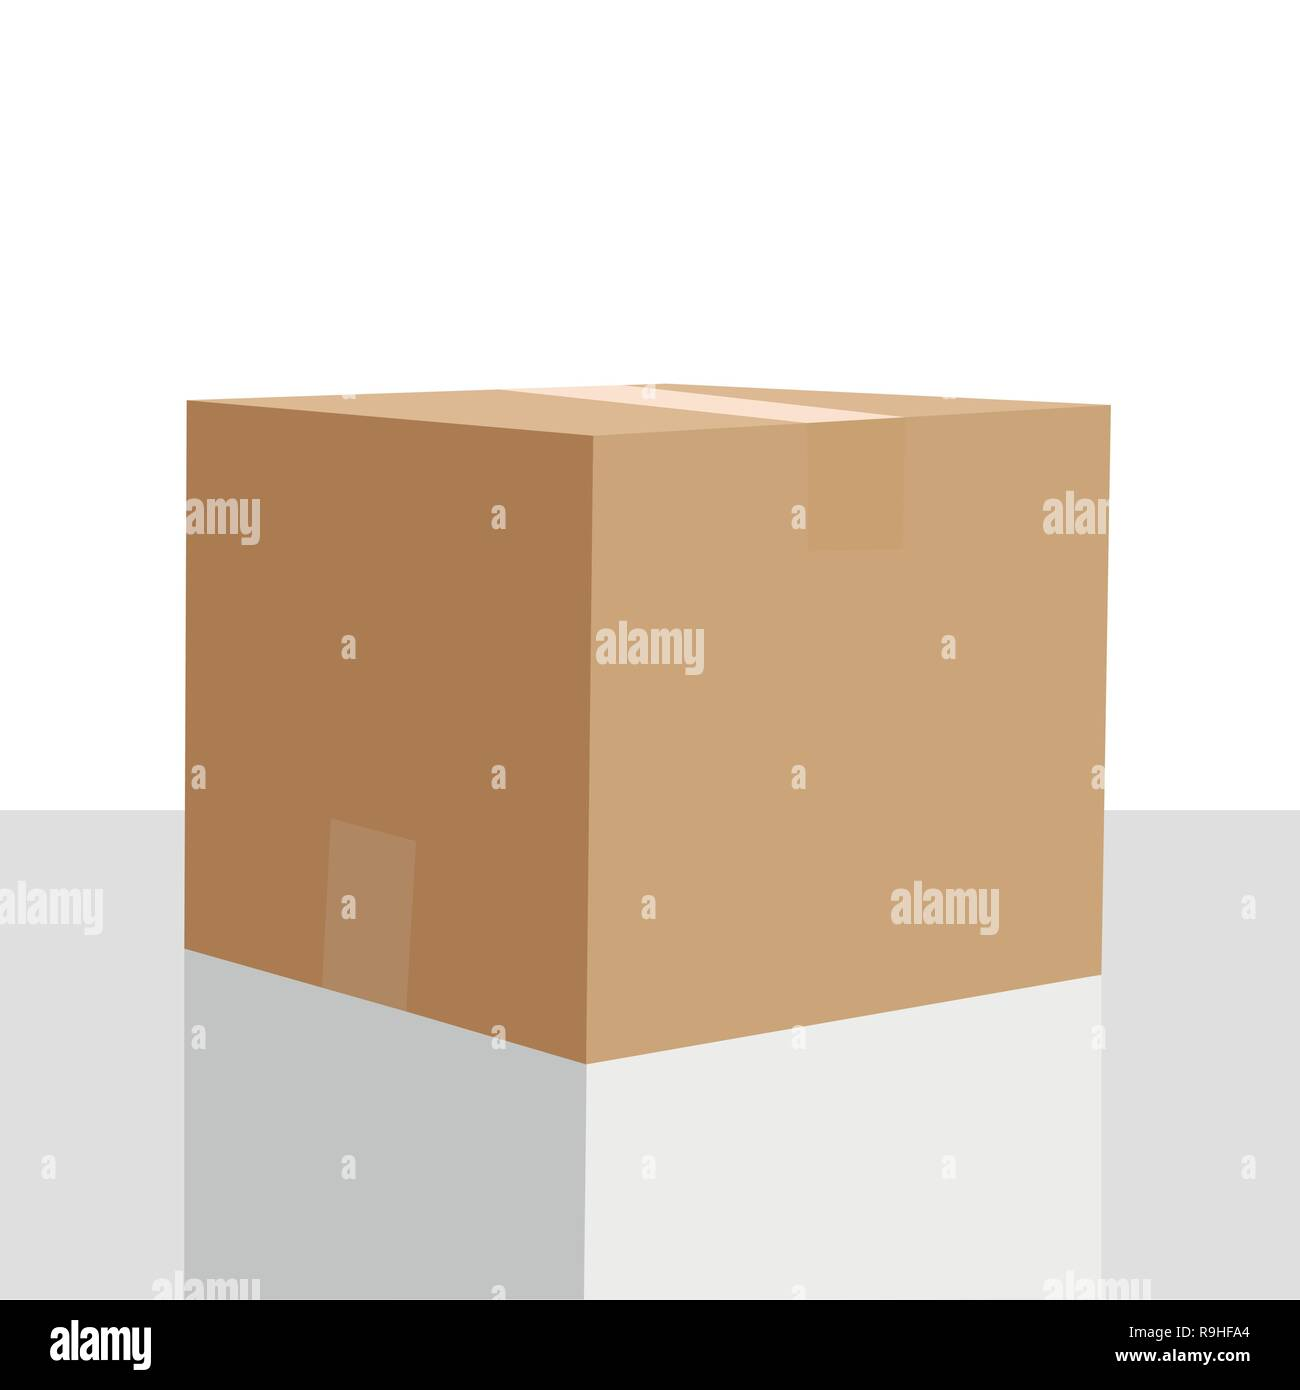 Empty closed box mockup, post container for goods delivery and storage, packaging design. Parcel with adhesive tape isometric icon vector isolated. - Stock Vector